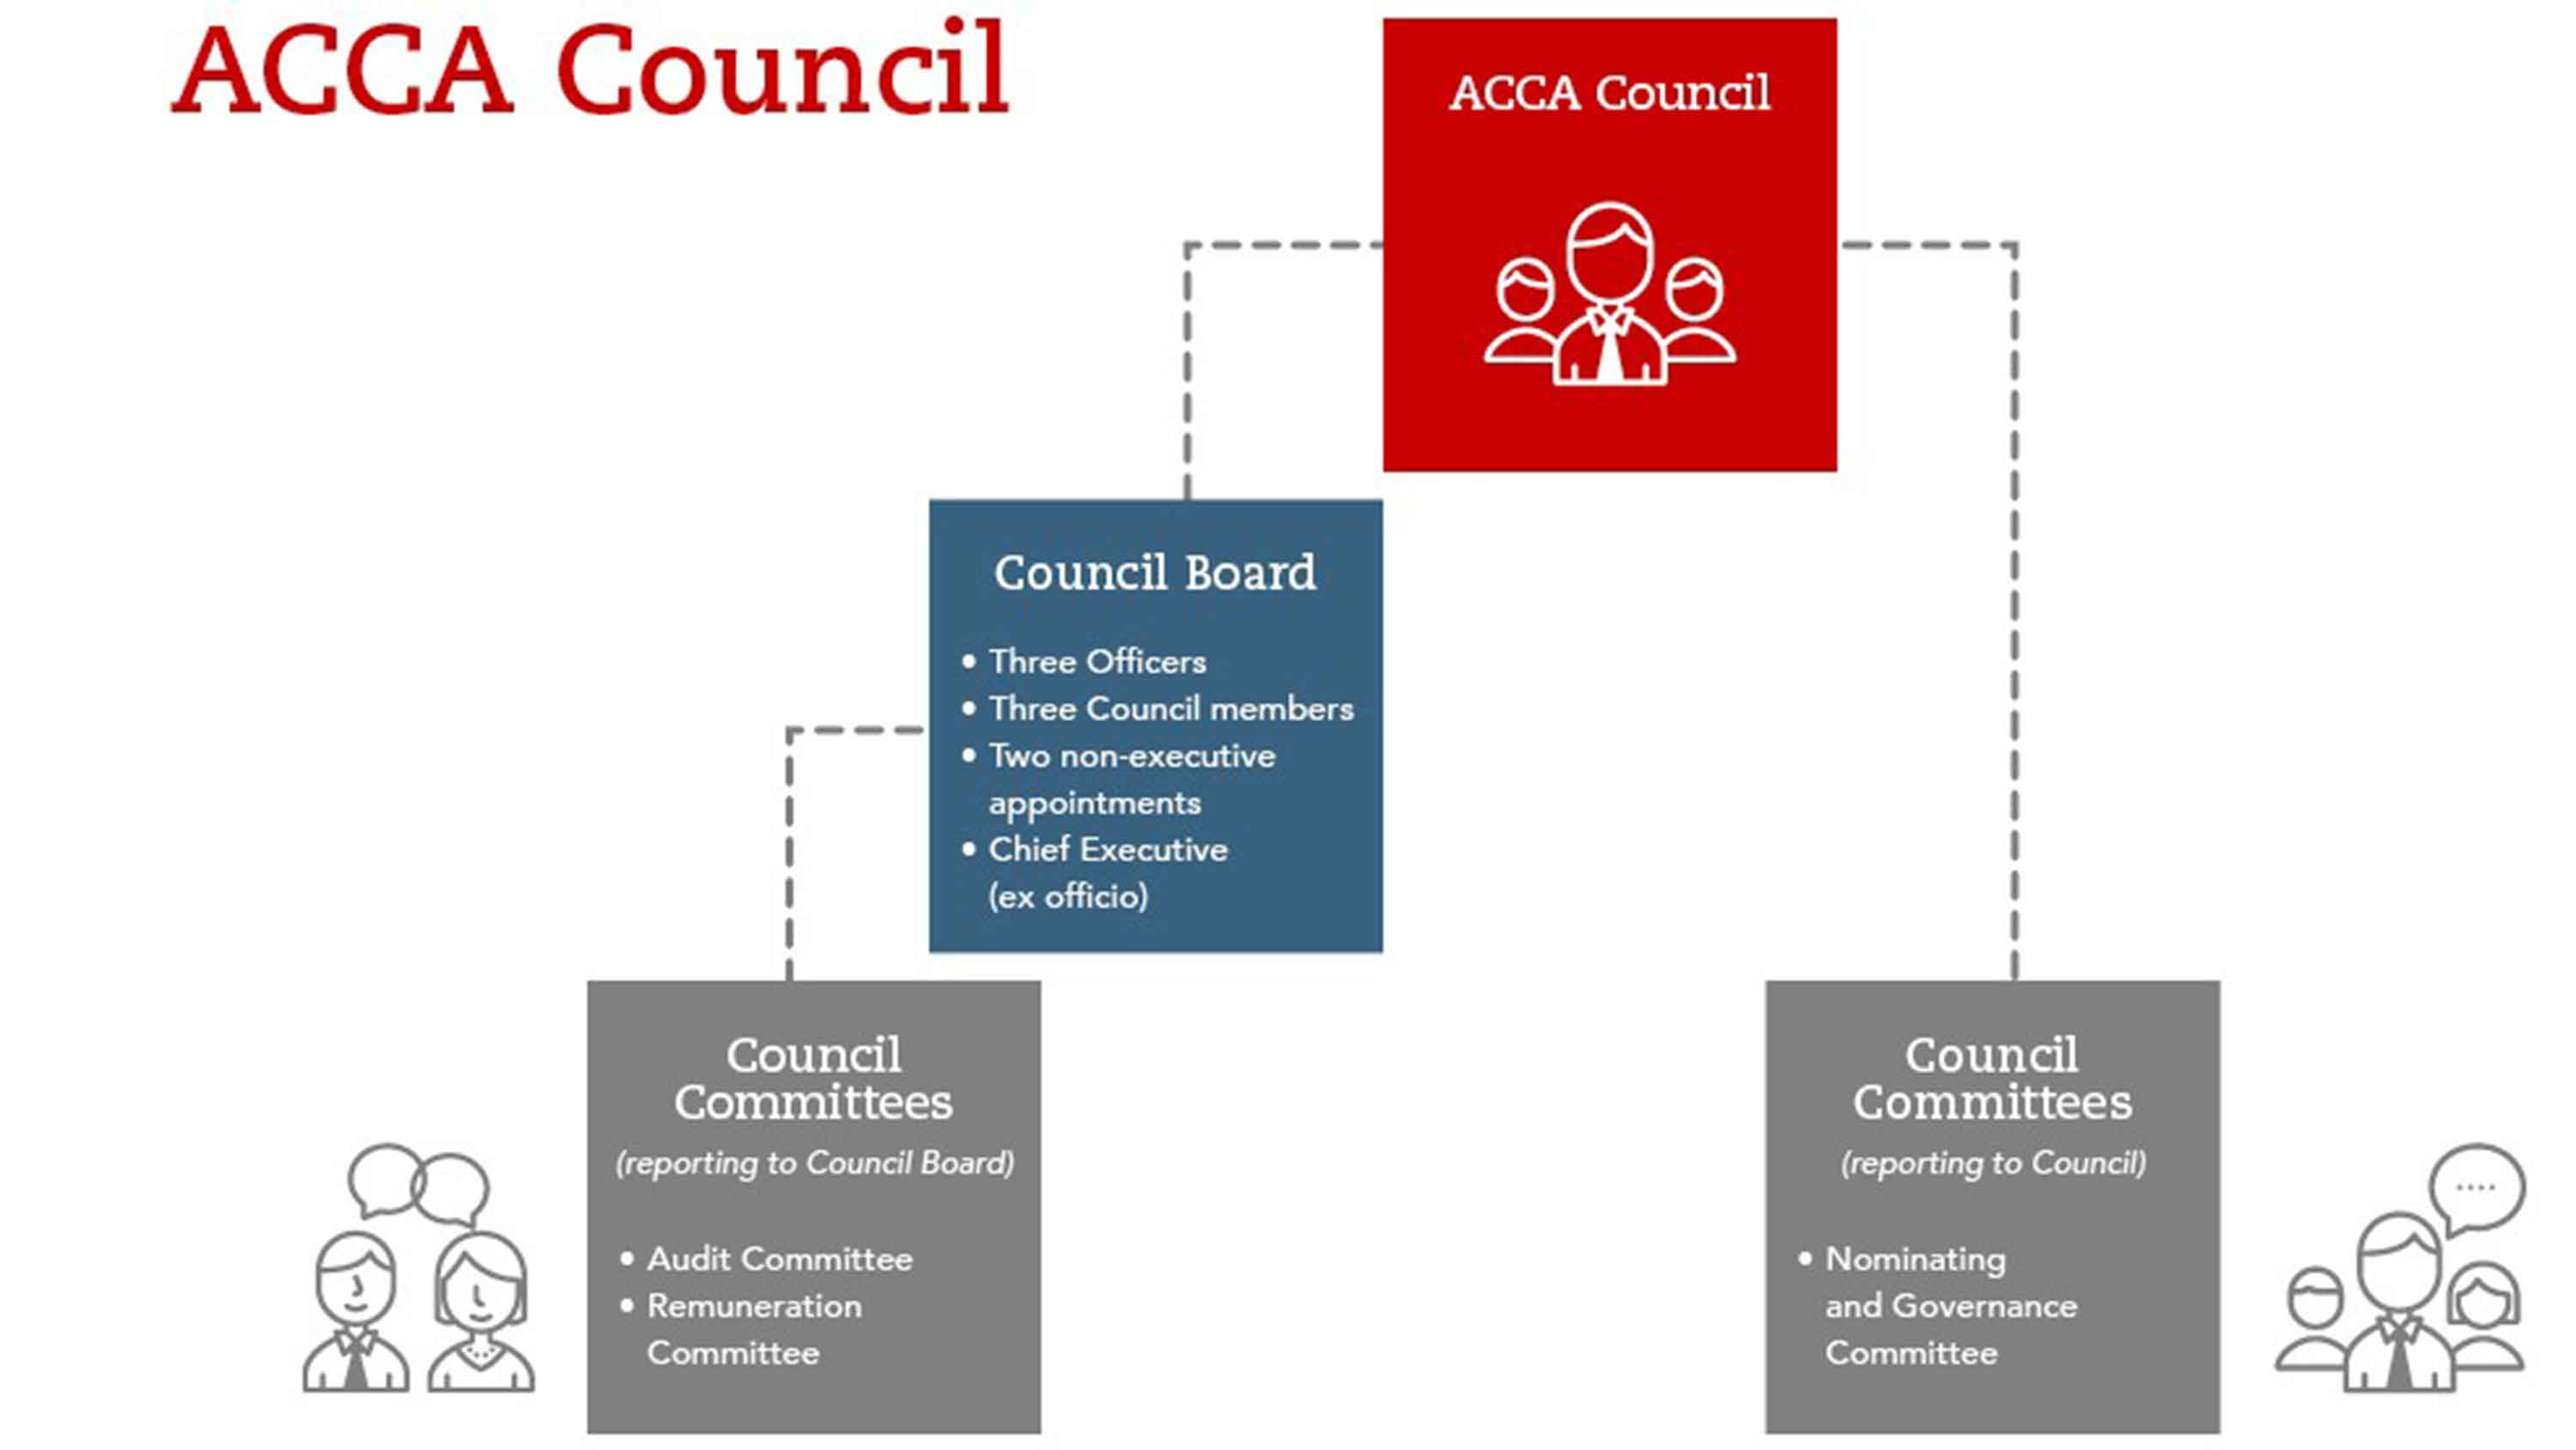 This image shows the structure of ACCA's governing Council. Three sub-groups of Council are (in no particular order): Council Board, consisting of three officers, three Council members, two non-executive appointments and Chief executive (ex officio).  Council Committees (reporting to Council Board), consisting of the Audit committee and Remuneration committee, and the final group Council Committees, reporting to Council, and consisting of the Nominating and Governance committee.